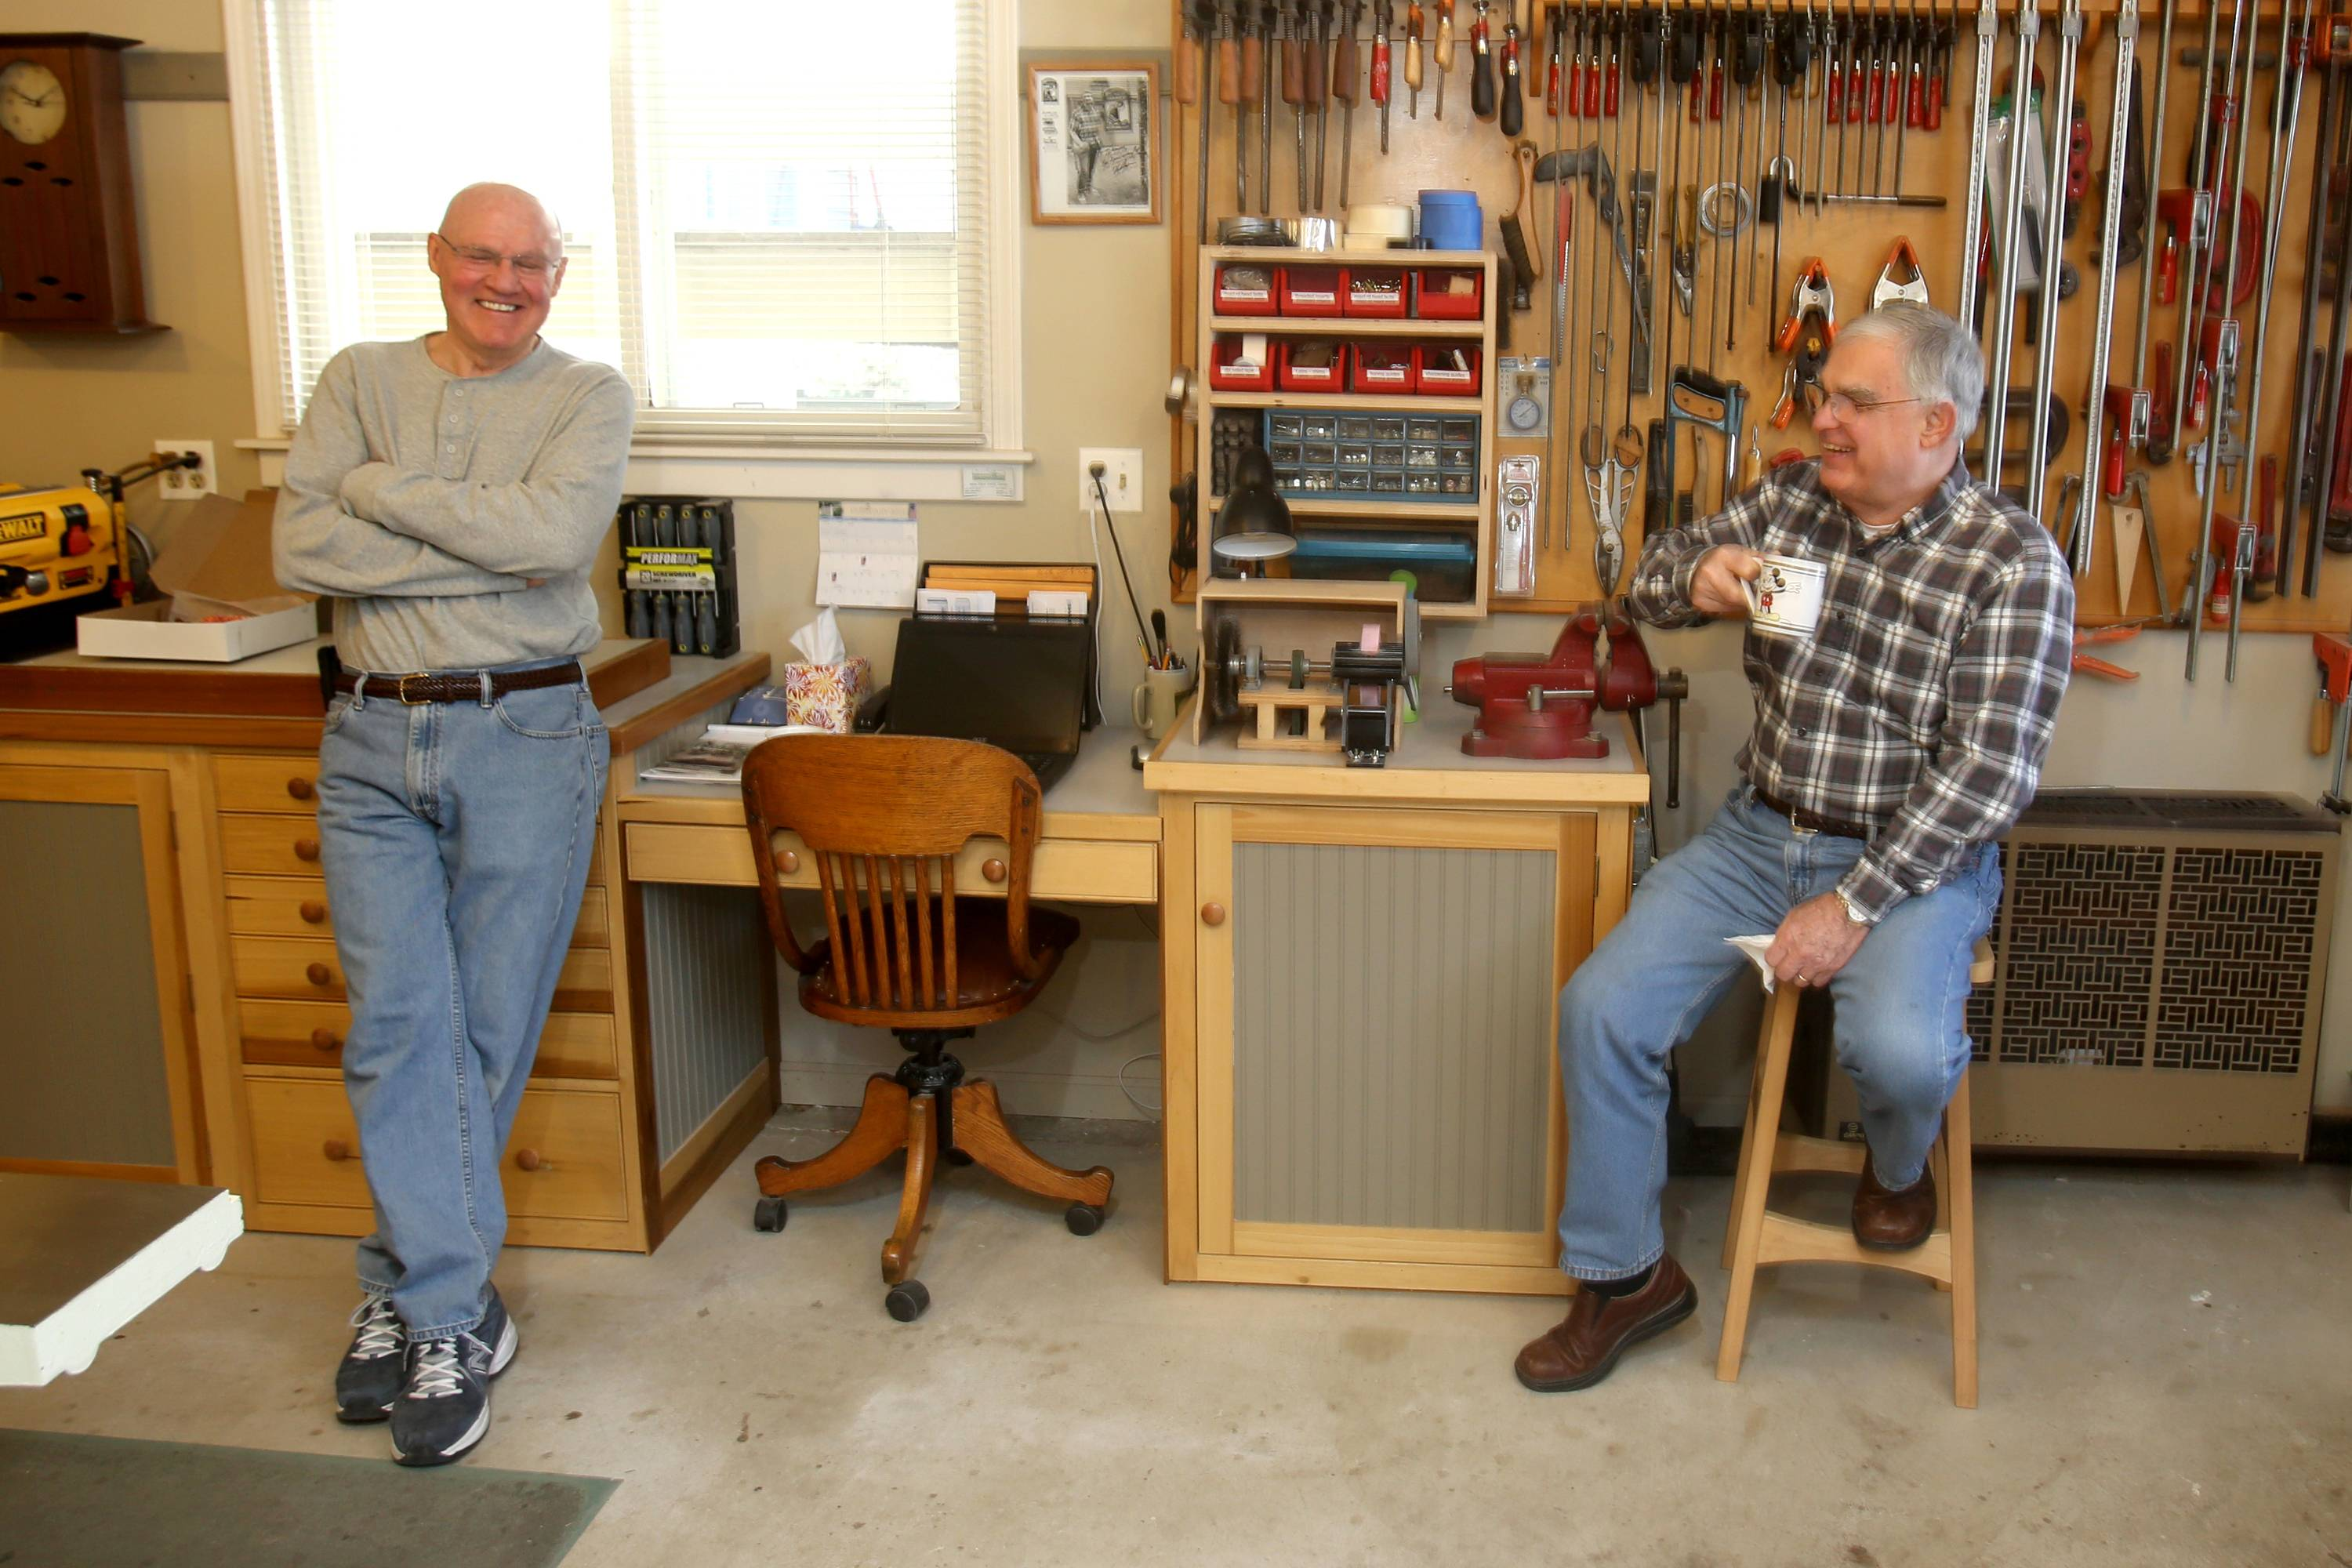 Wayne Maier of Glen Ellyn enjoys his woodworking shop where he relaxes with friends like Len Swanson, right.